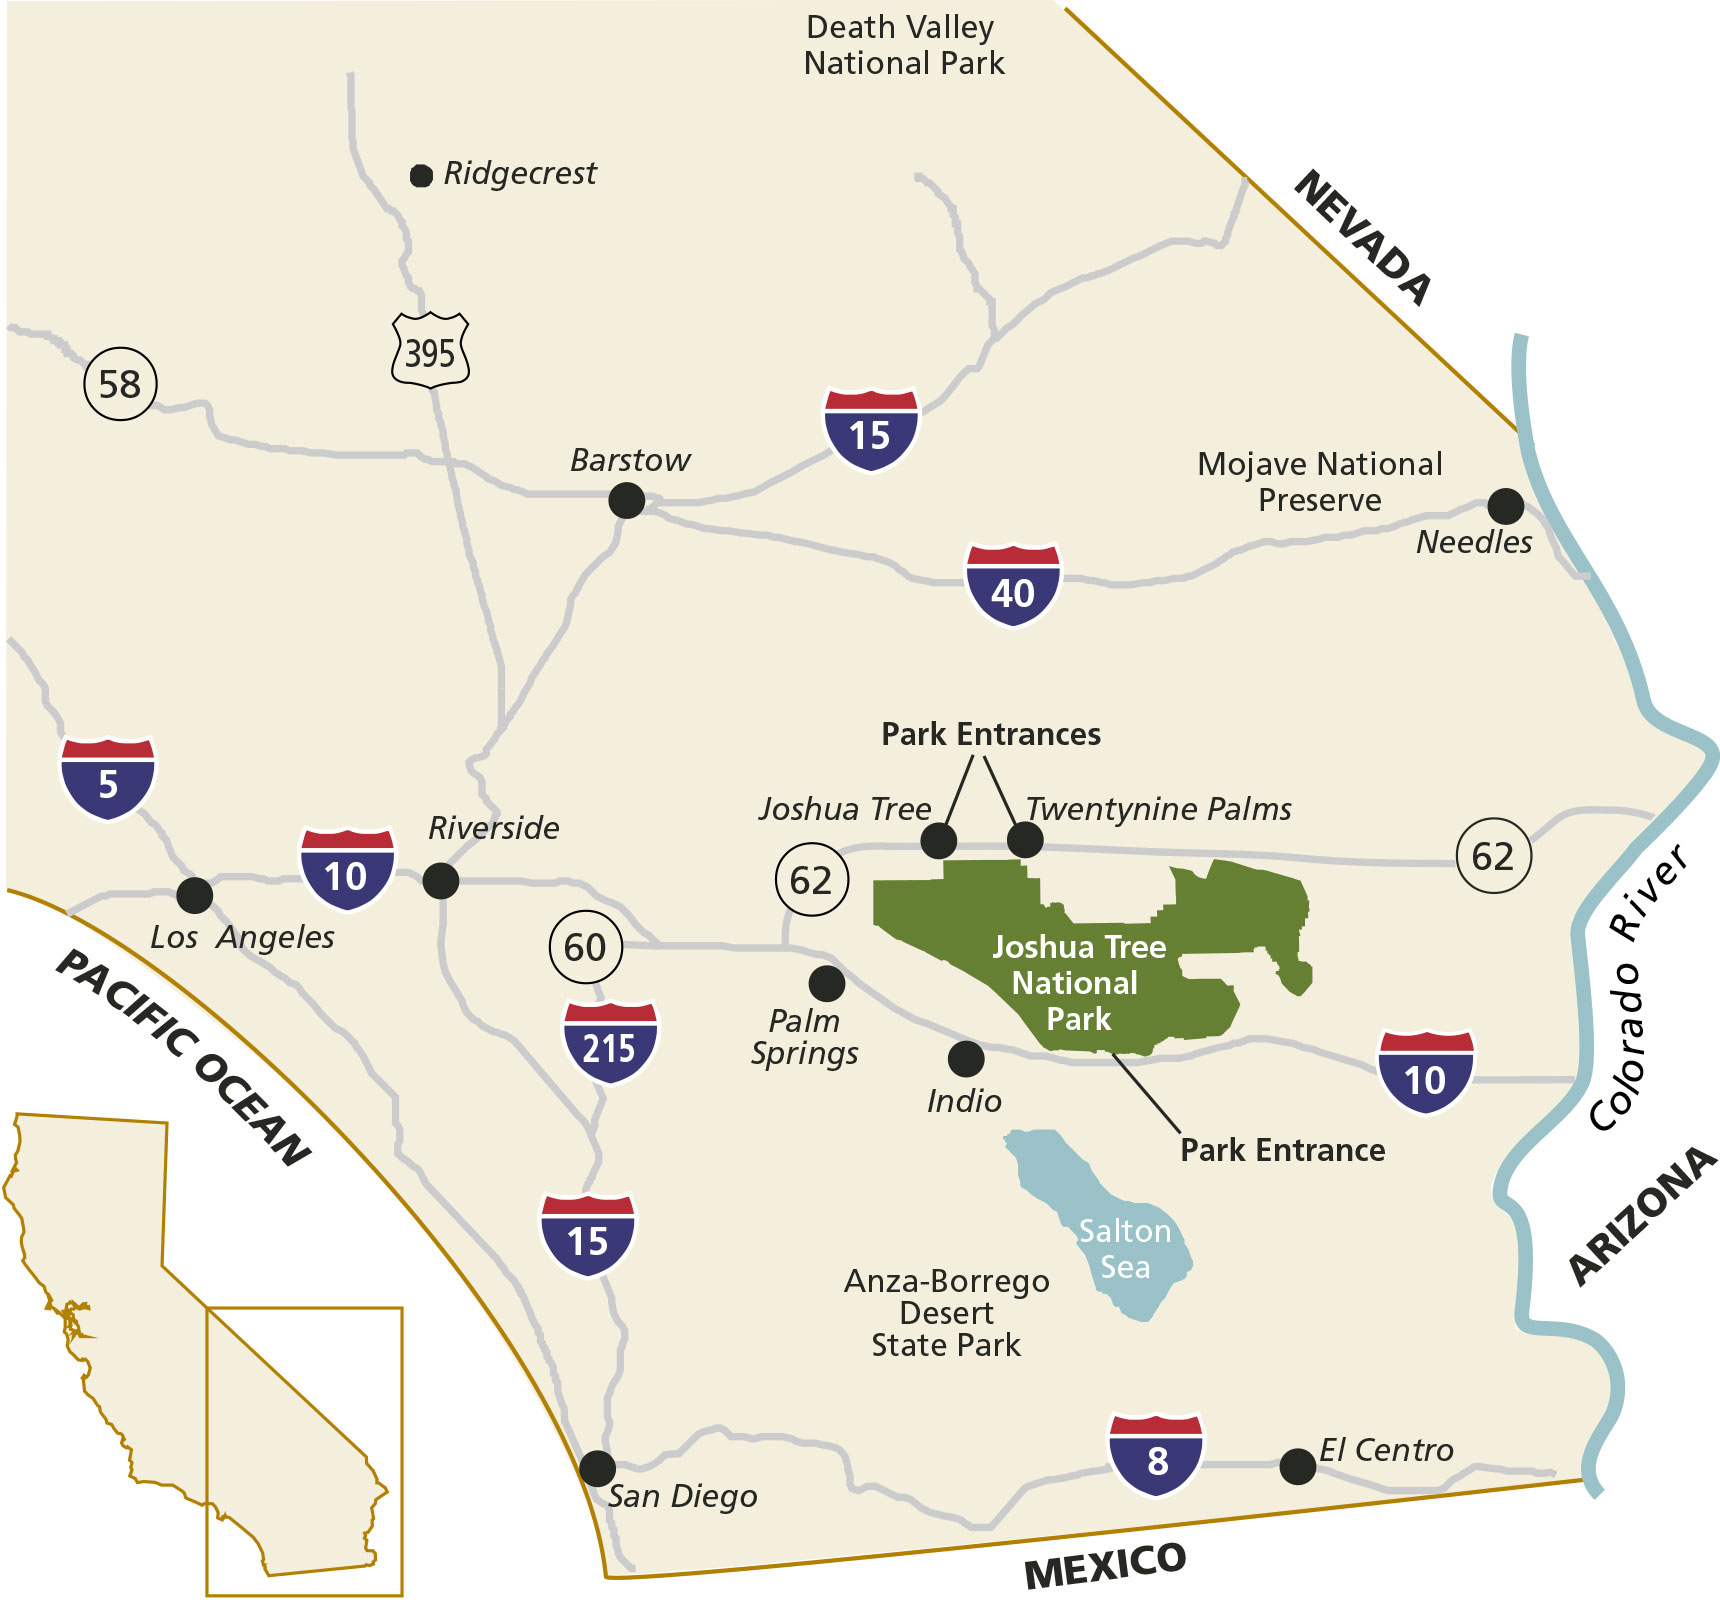 Color Map Of Joshua Tree National Park In Location In Southern California Major Interstates Are